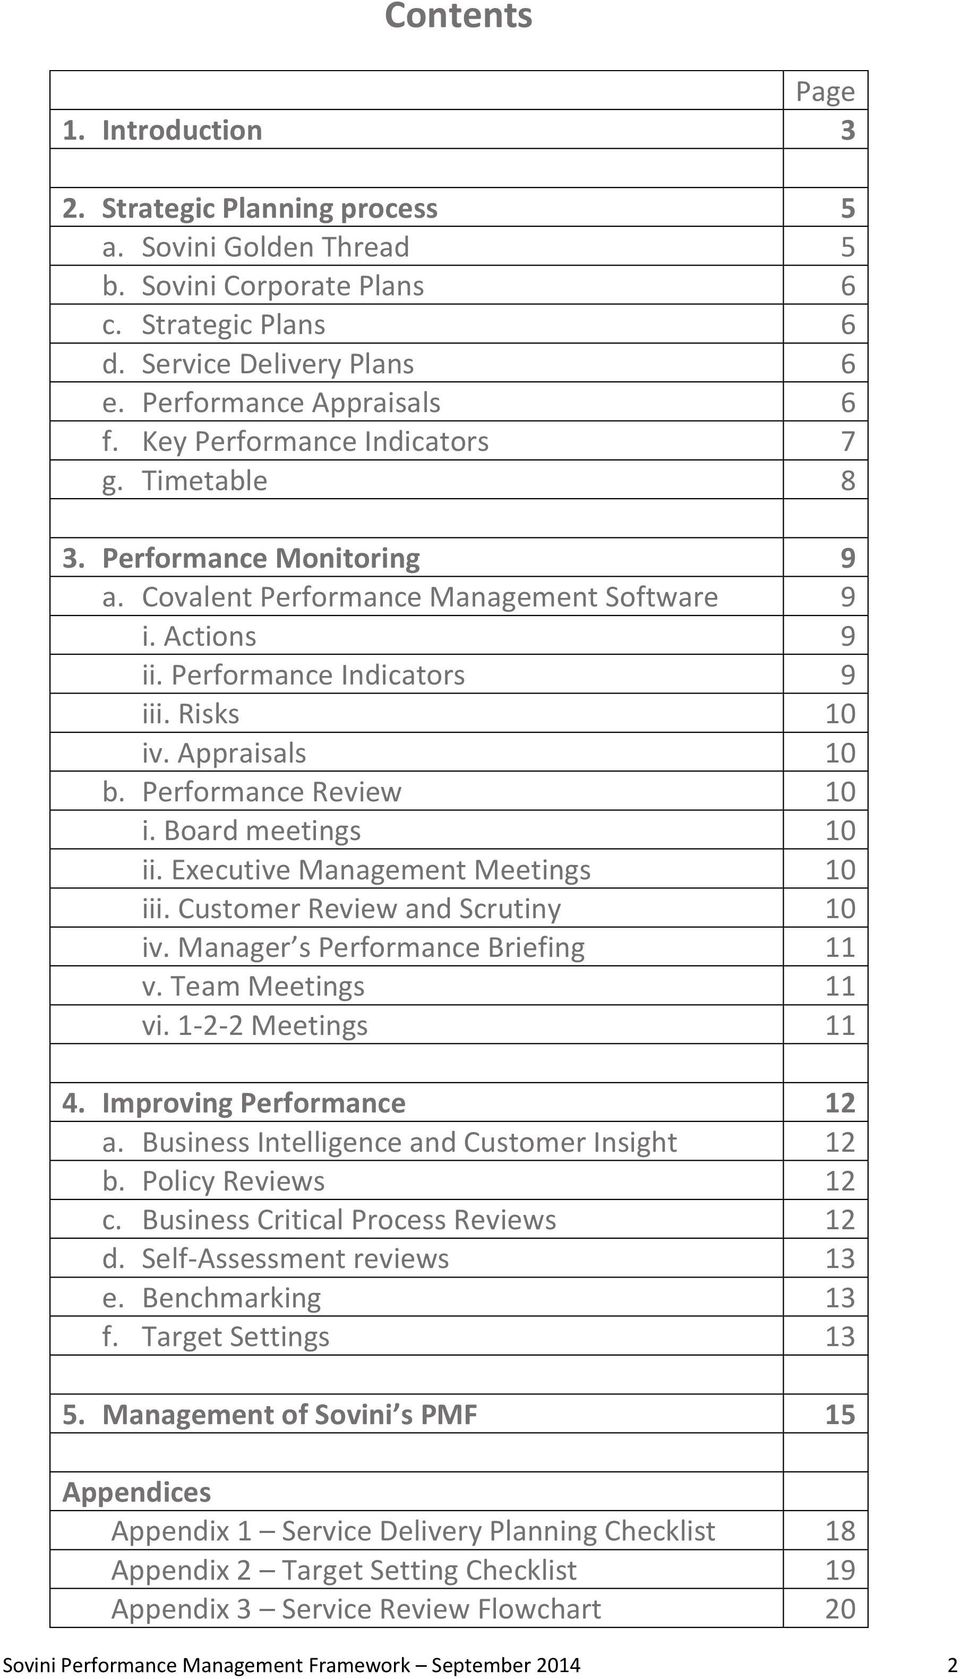 Performance Review 10 i. Board meetings 10 ii. Executive Management Meetings 10 iii. Customer Review and Scrutiny 10 iv. Manager s Performance Briefing 11 v. Team Meetings 11 vi. 1-2-2 Meetings 11 4.